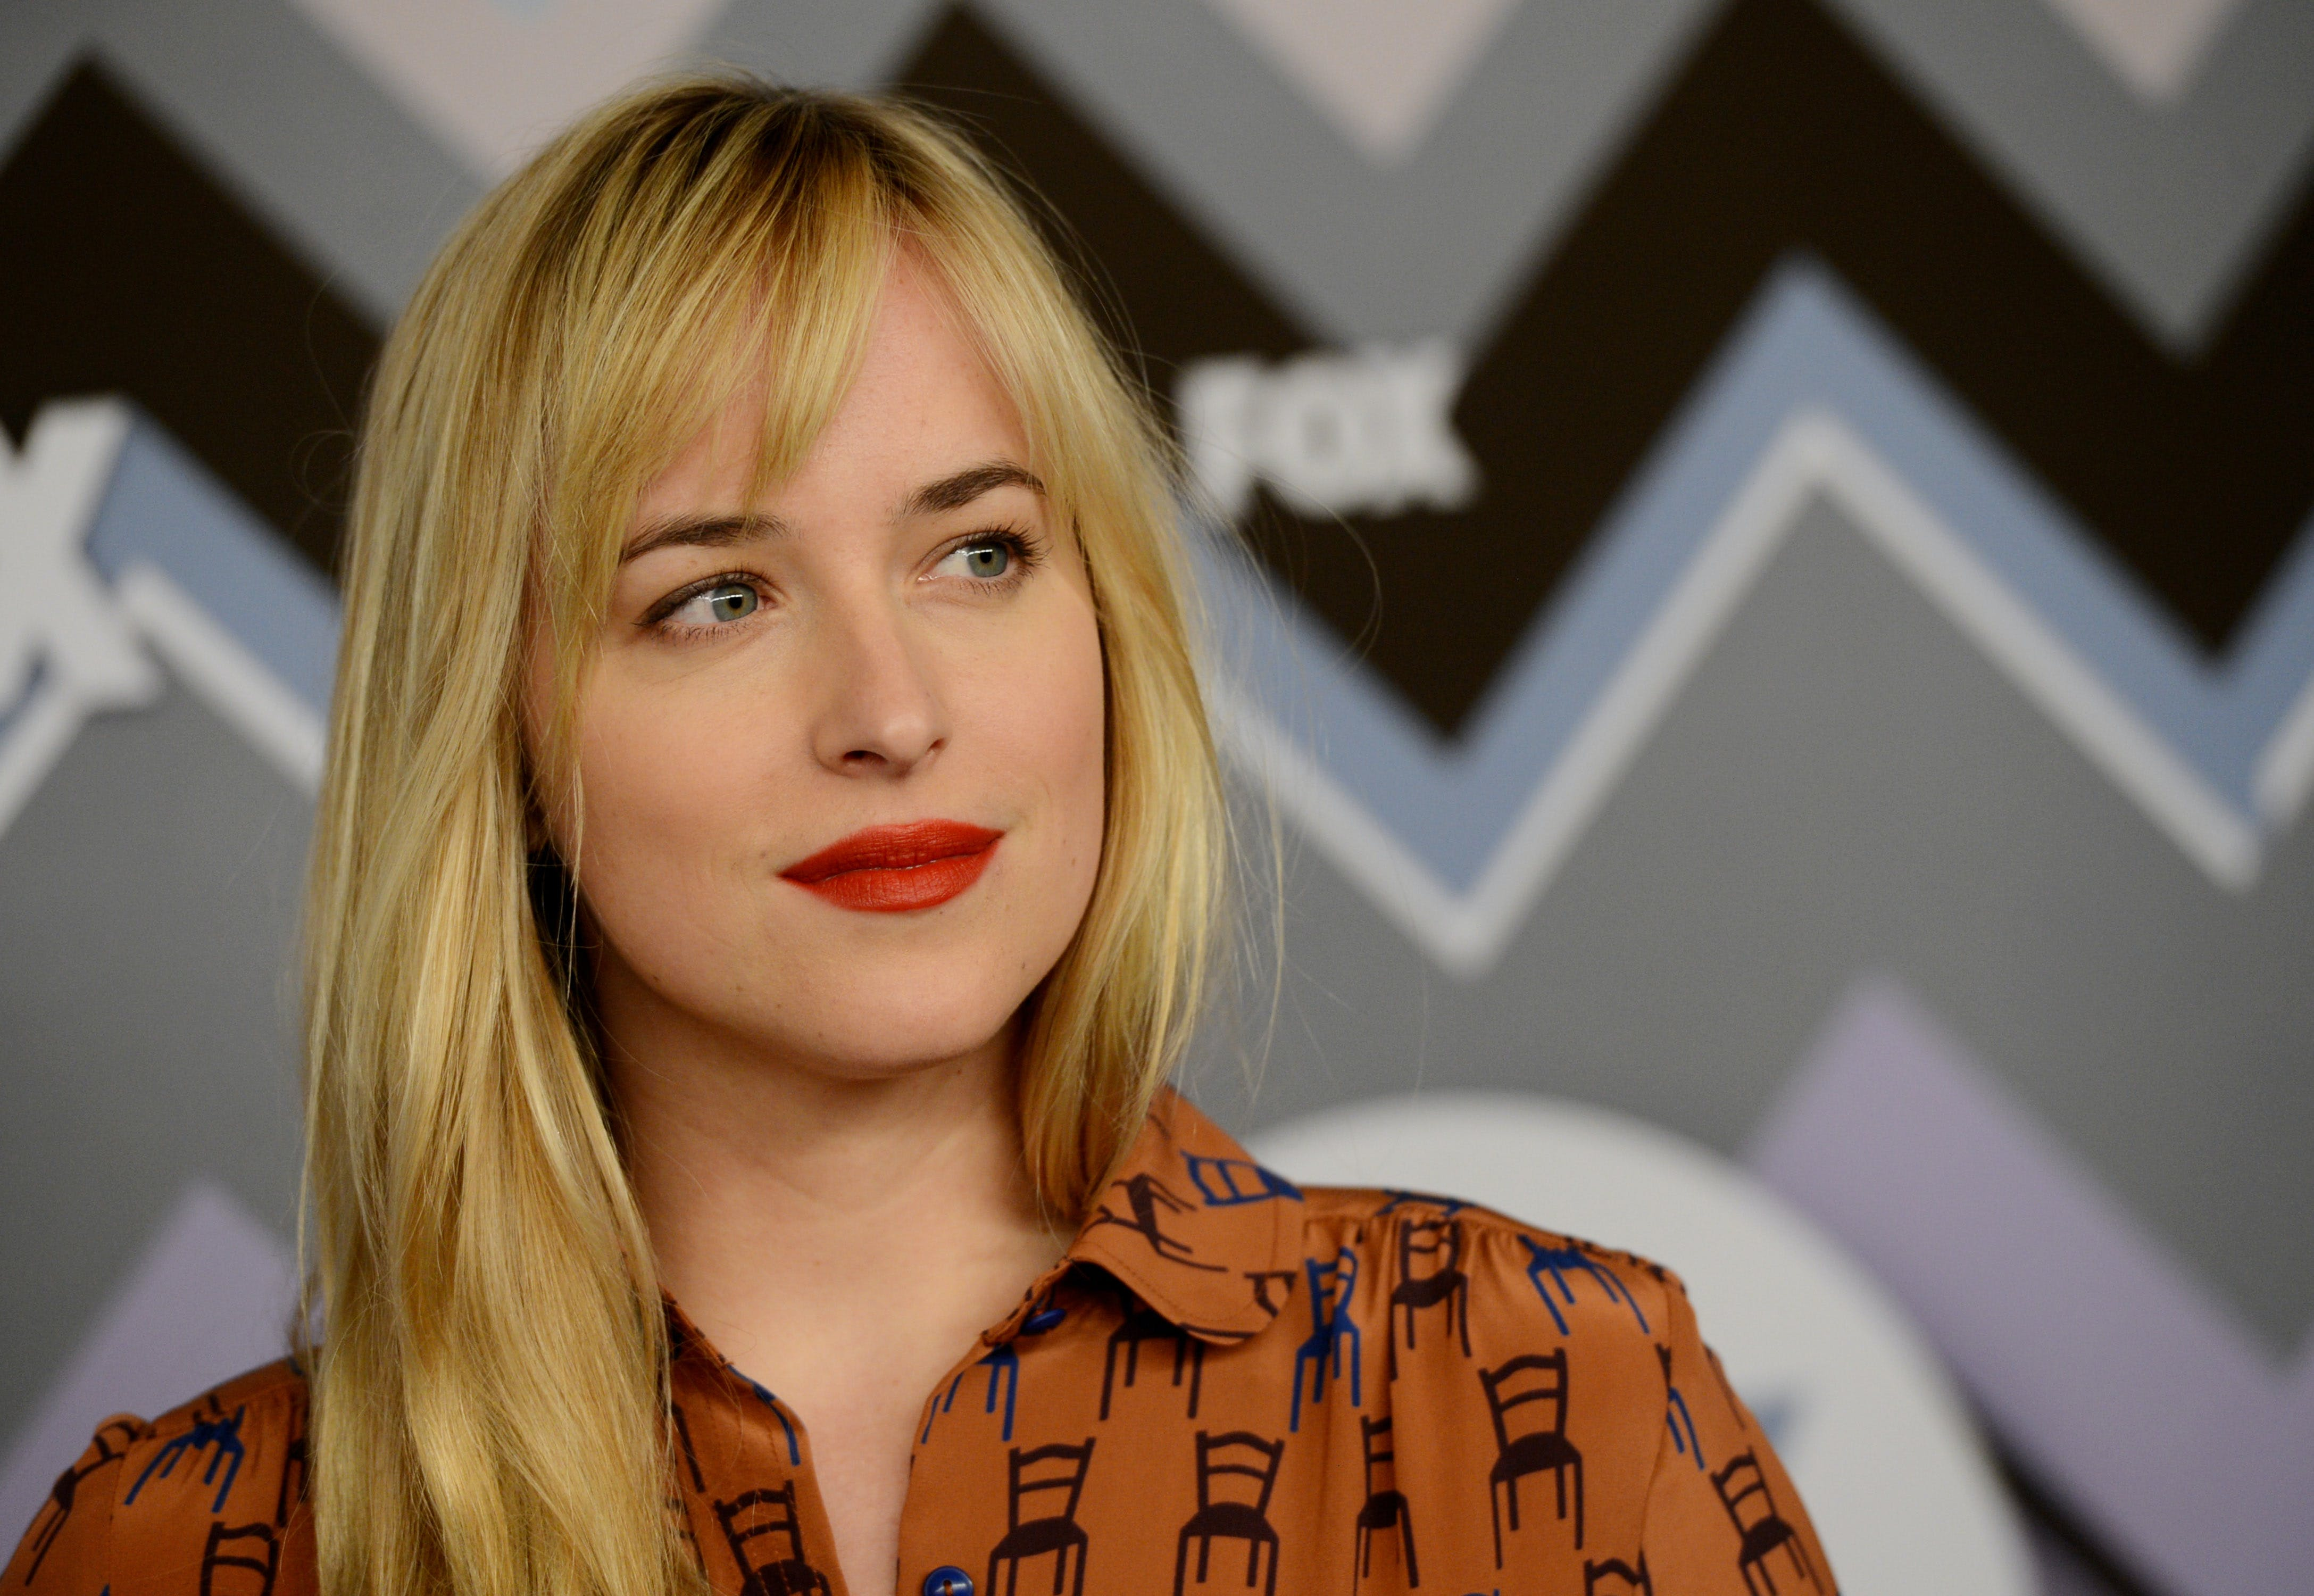 Who Auditioned For Fifty Shades Of Grey These 15 Actresses Could Have Played Anastasia Steele